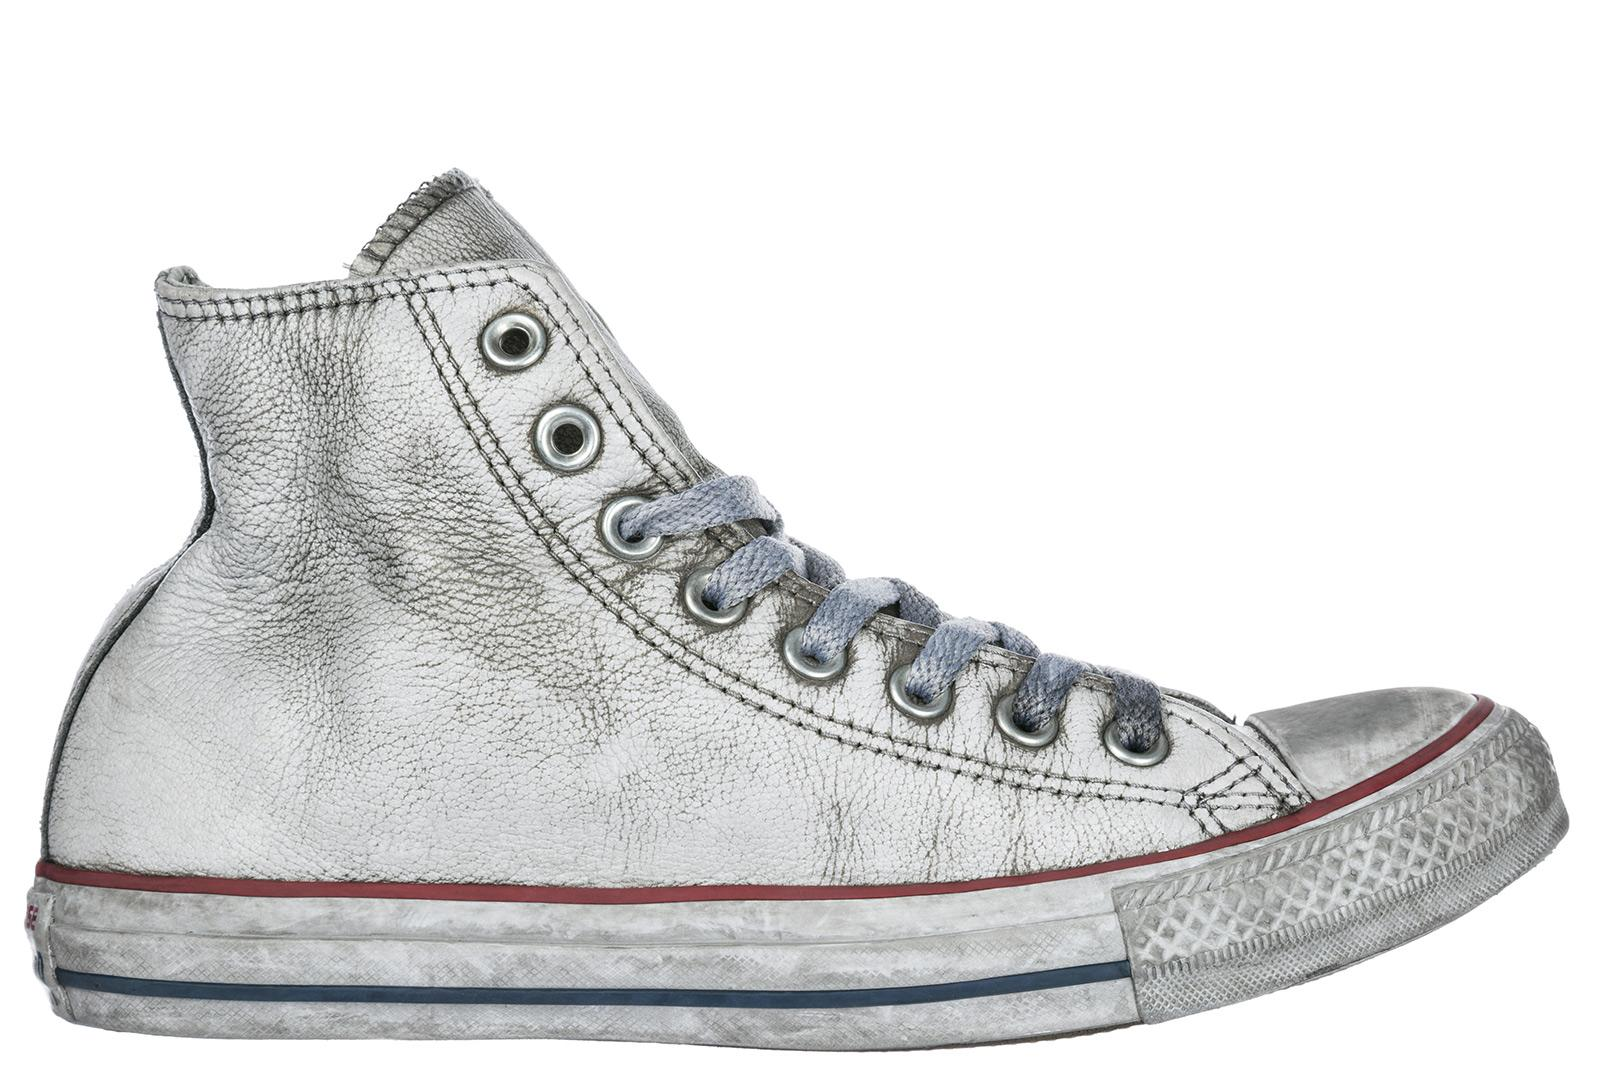 eddaa5d6c3bb Converse Men's Shoes High Top Leather Trainers Sneakers Limited Edition In  Grey